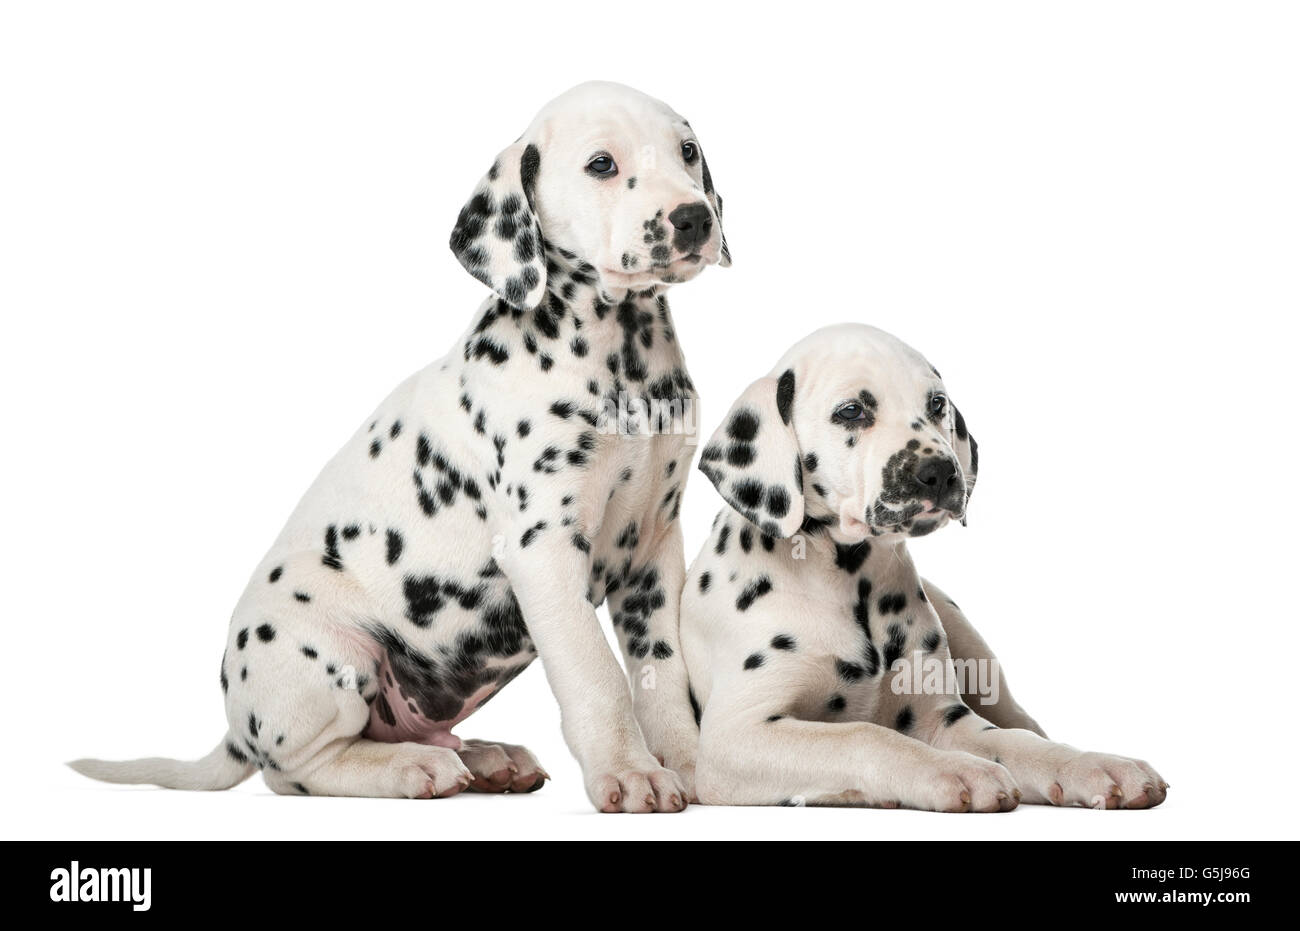 Two Dalmatian puppies in front of a white background - Stock Image